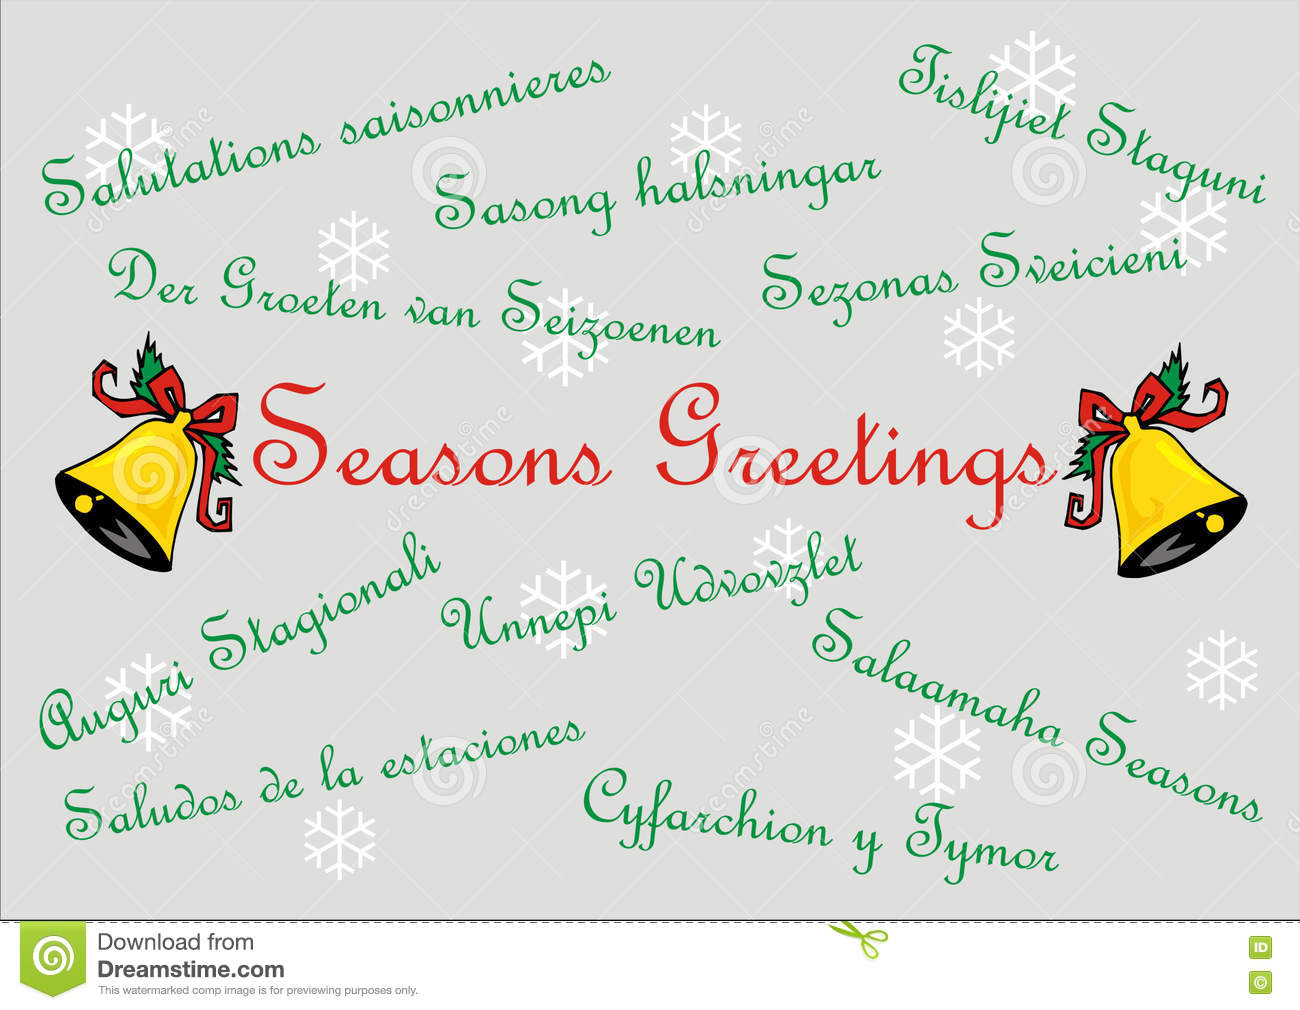 Seasons greetings banner card multi languages stock seasons greetings banner card multi languages kristyandbryce Image collections